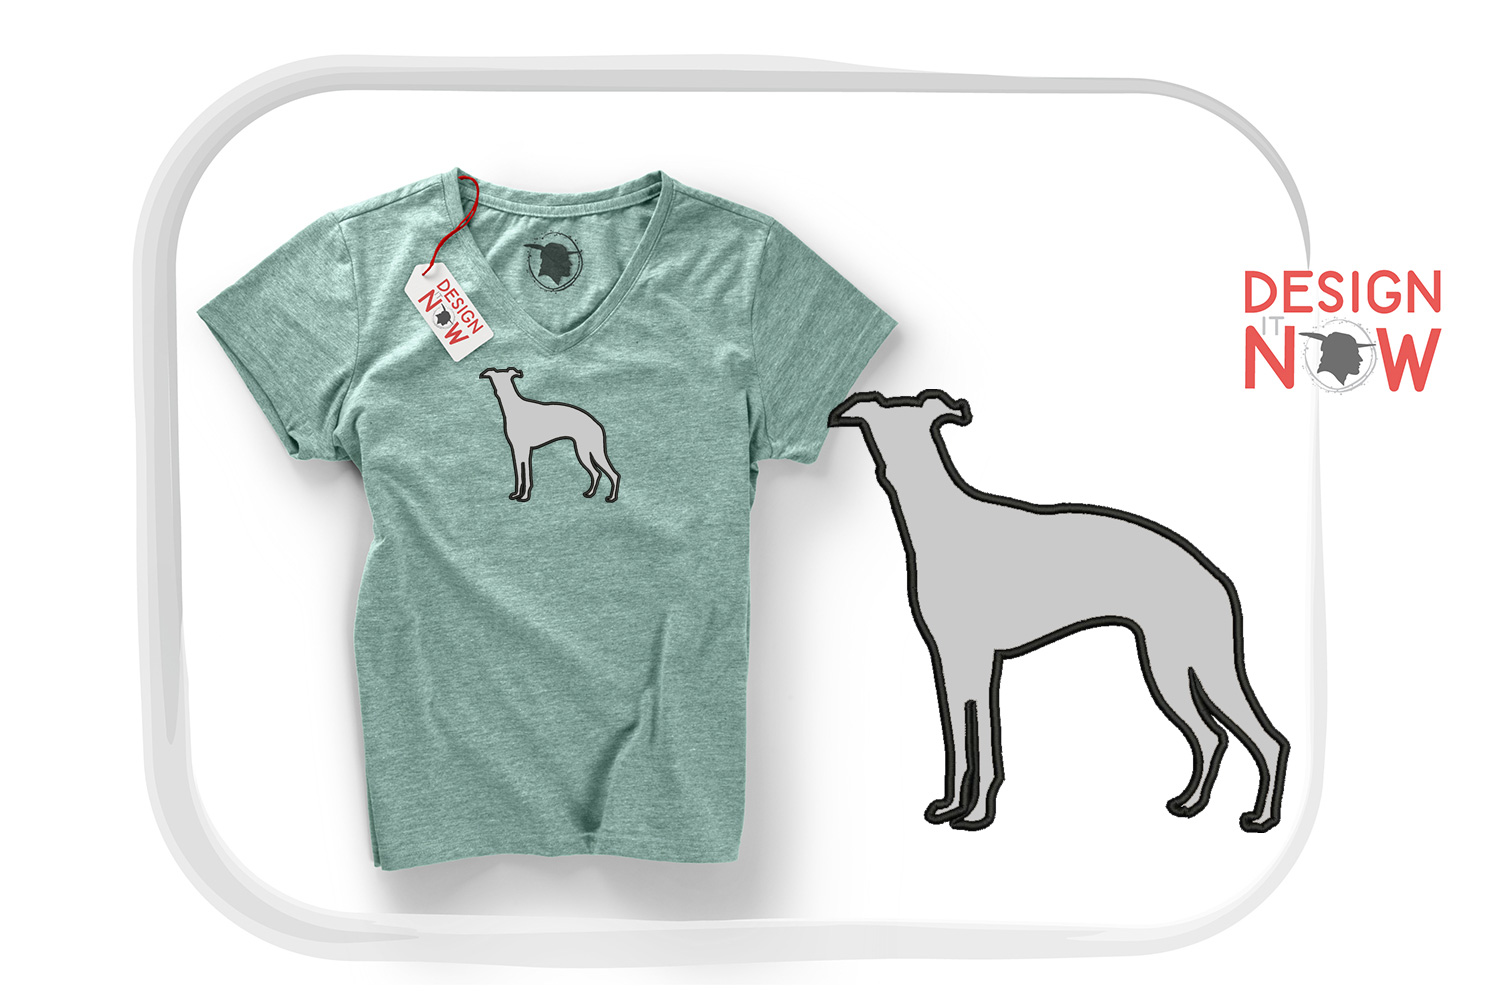 Whippet Dog Applique Design, Dog Embroidery Design example image 1